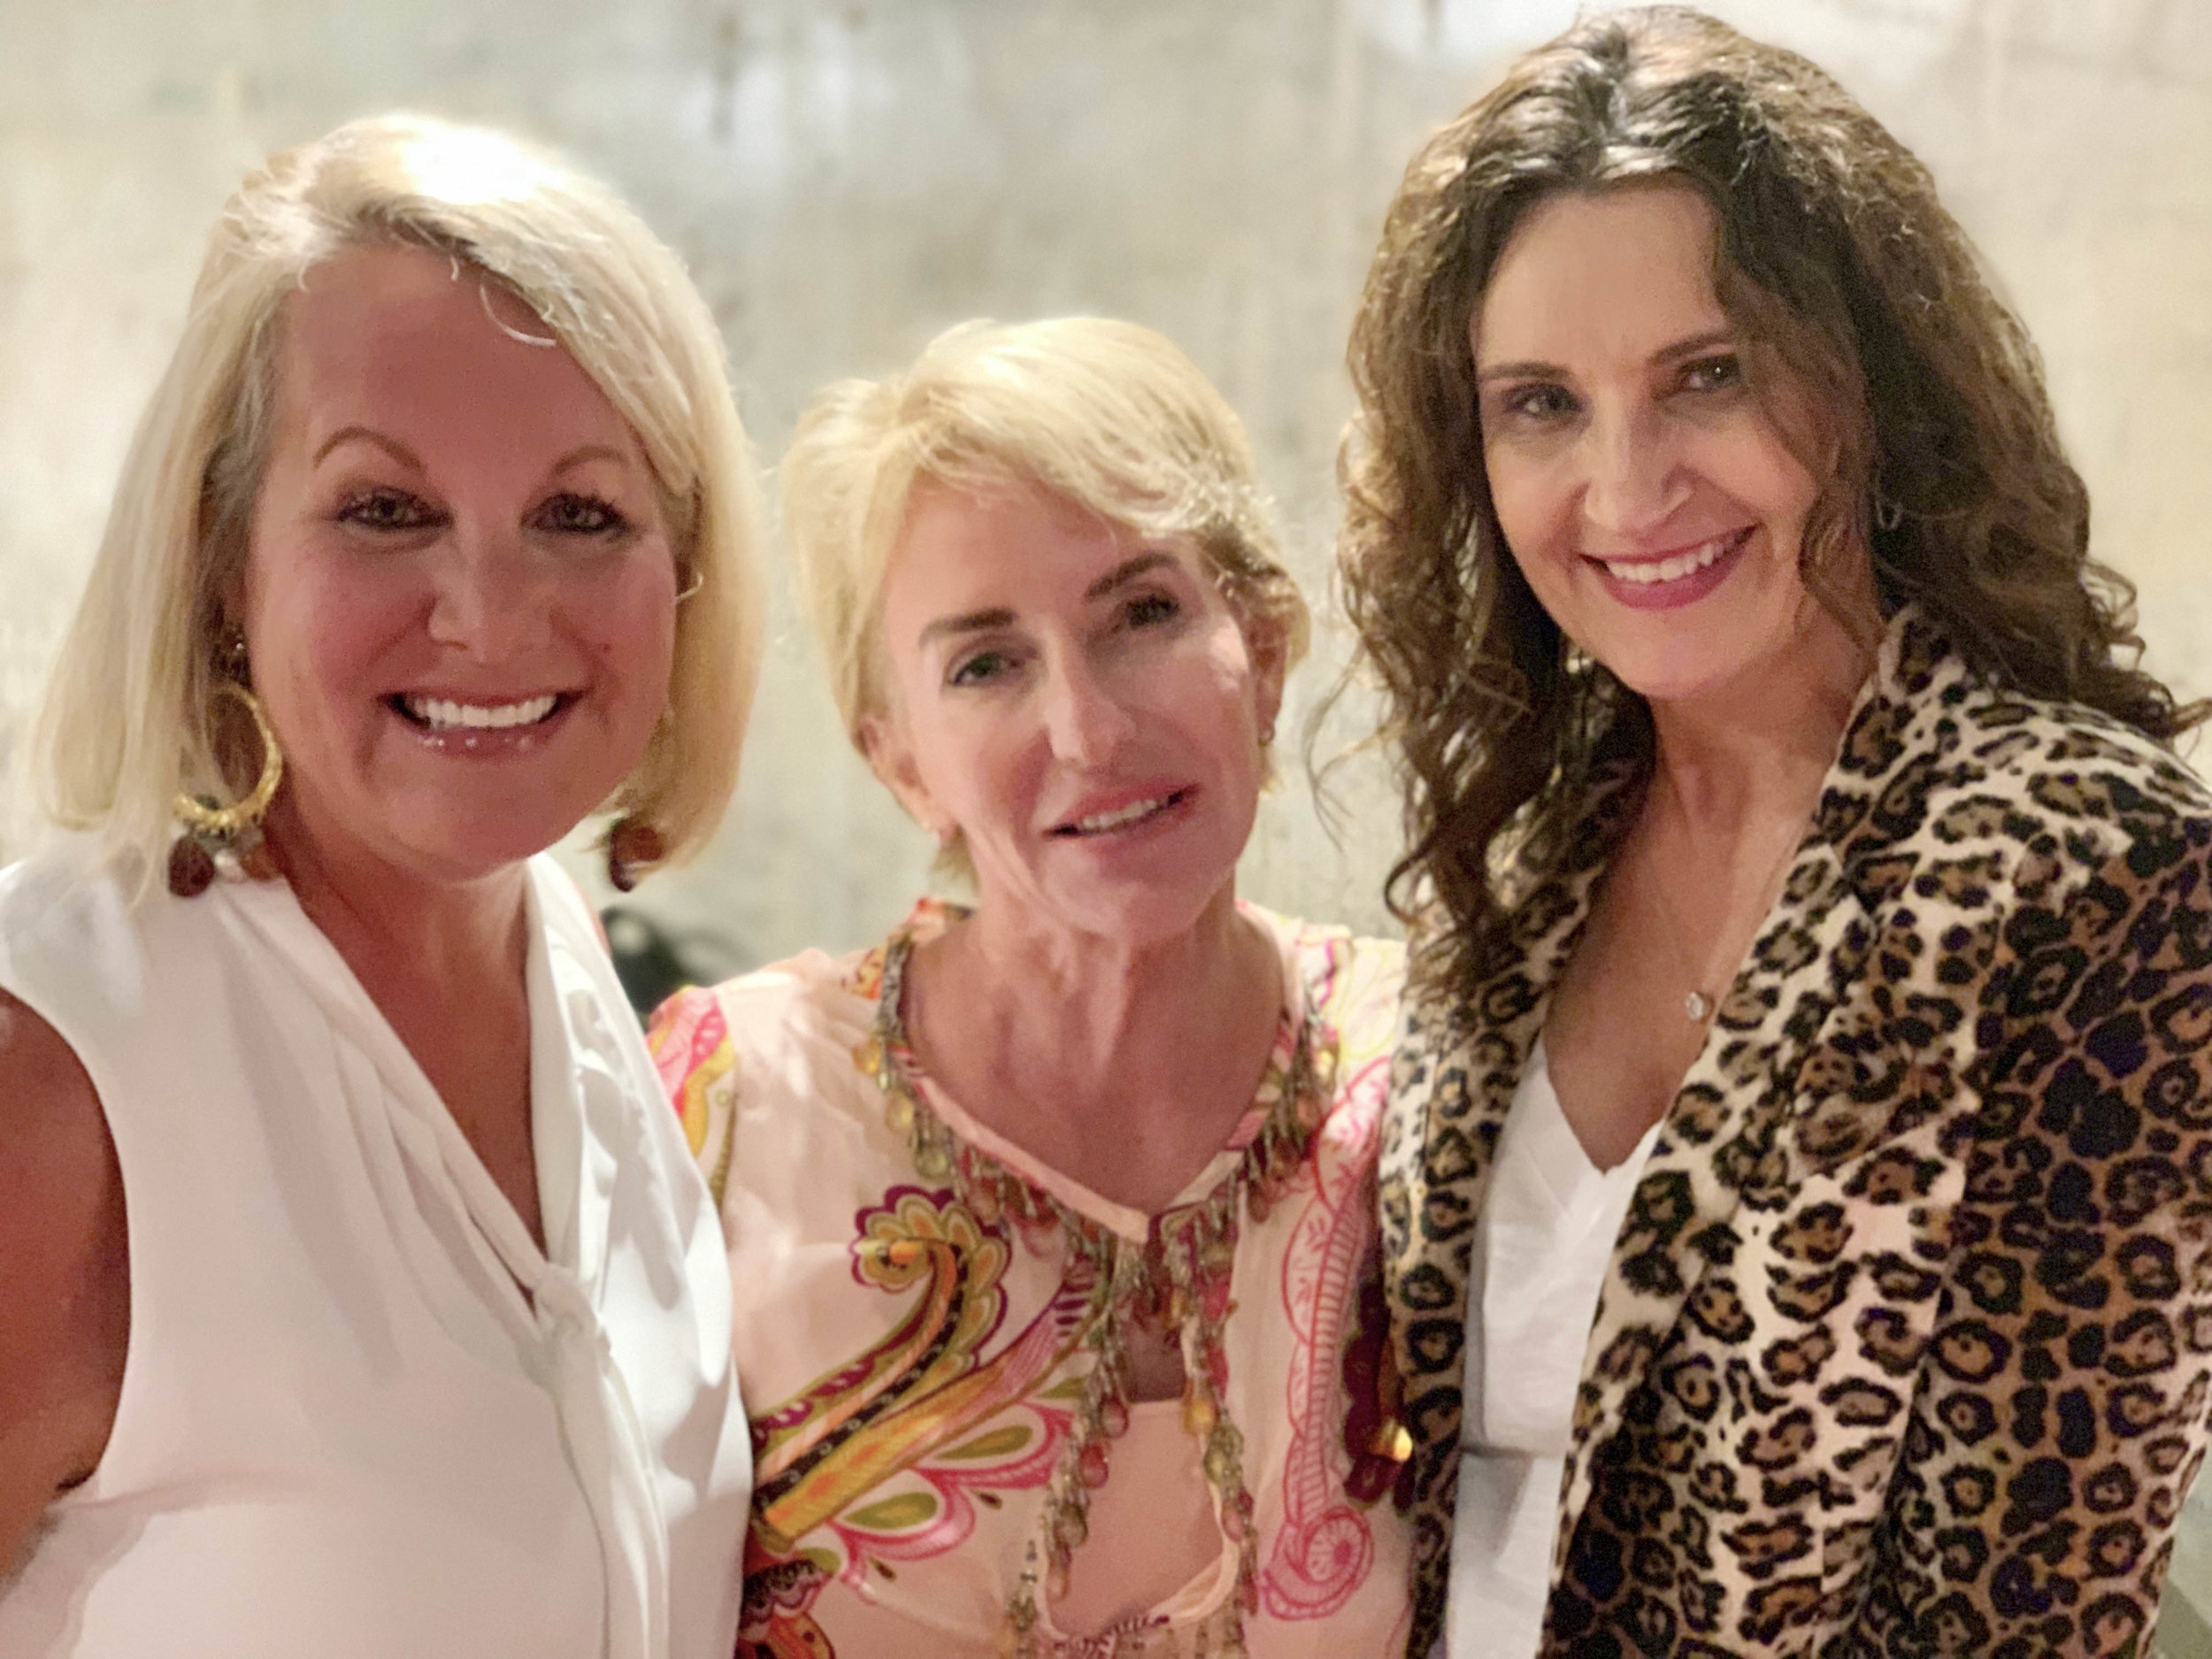 Mindy Day, Melissa Keil and Terri Giles